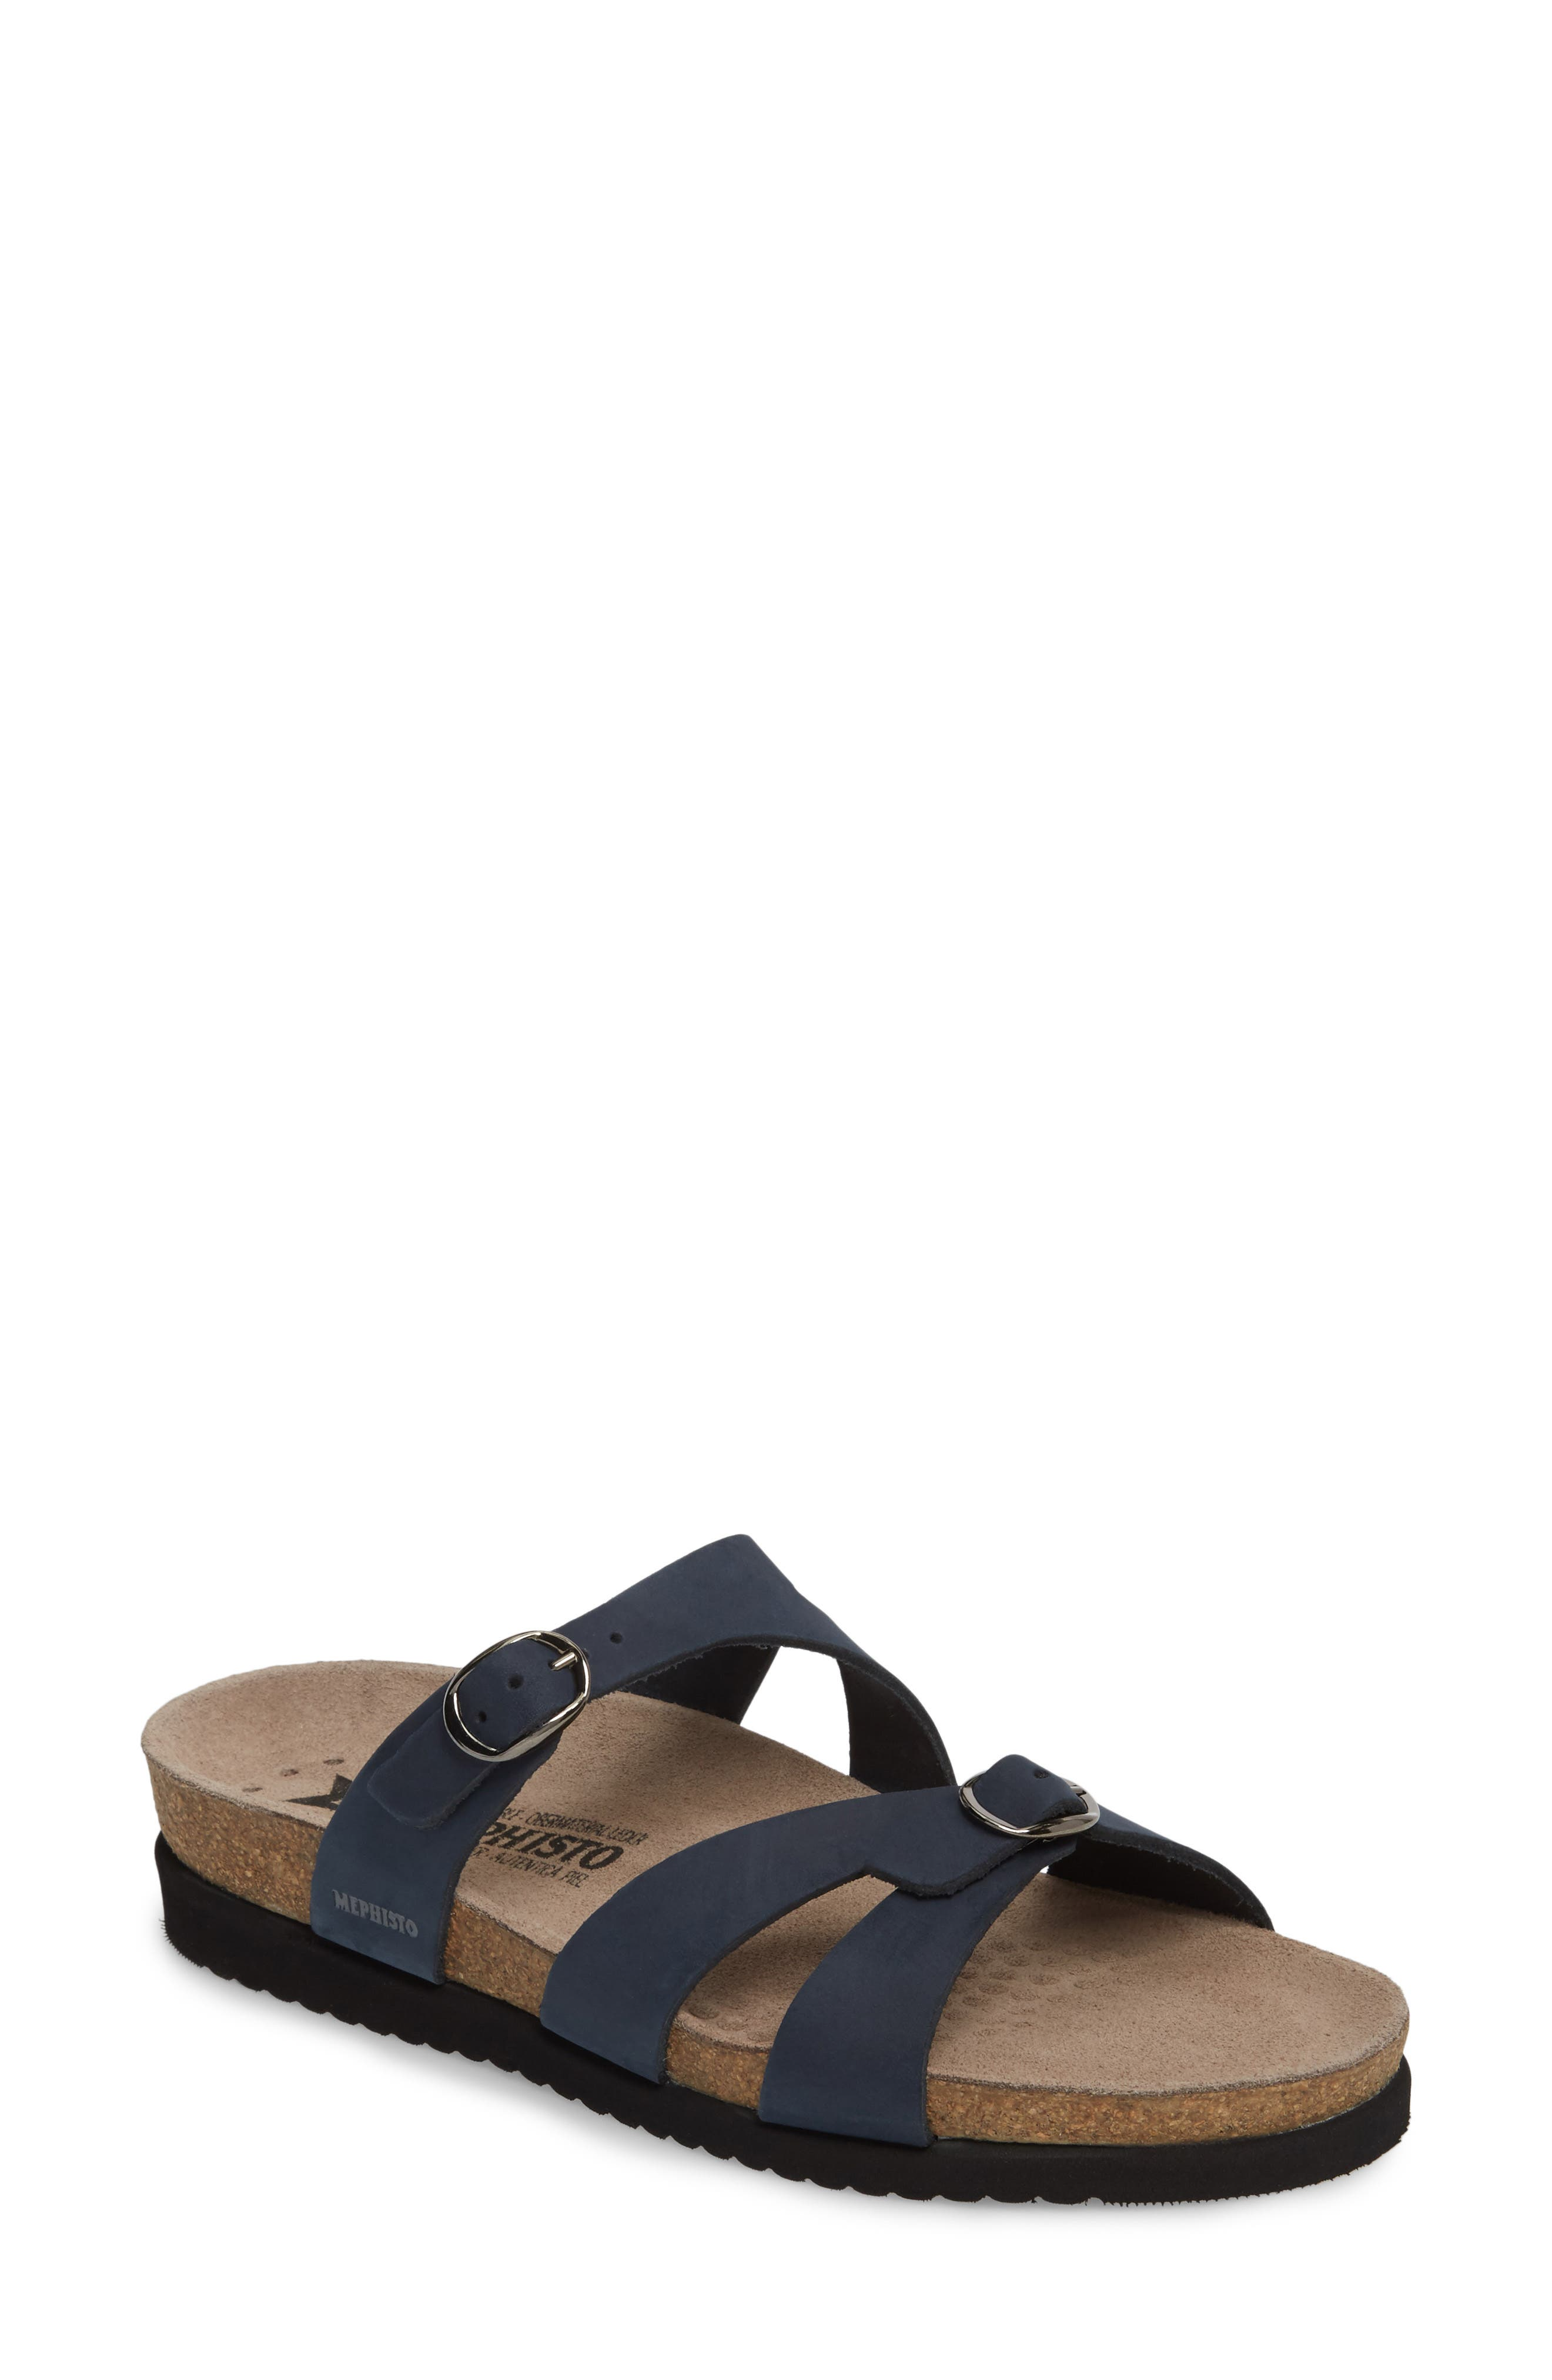 'Hannel' Sandal,                             Main thumbnail 1, color,                             Navy Nubuck Leather